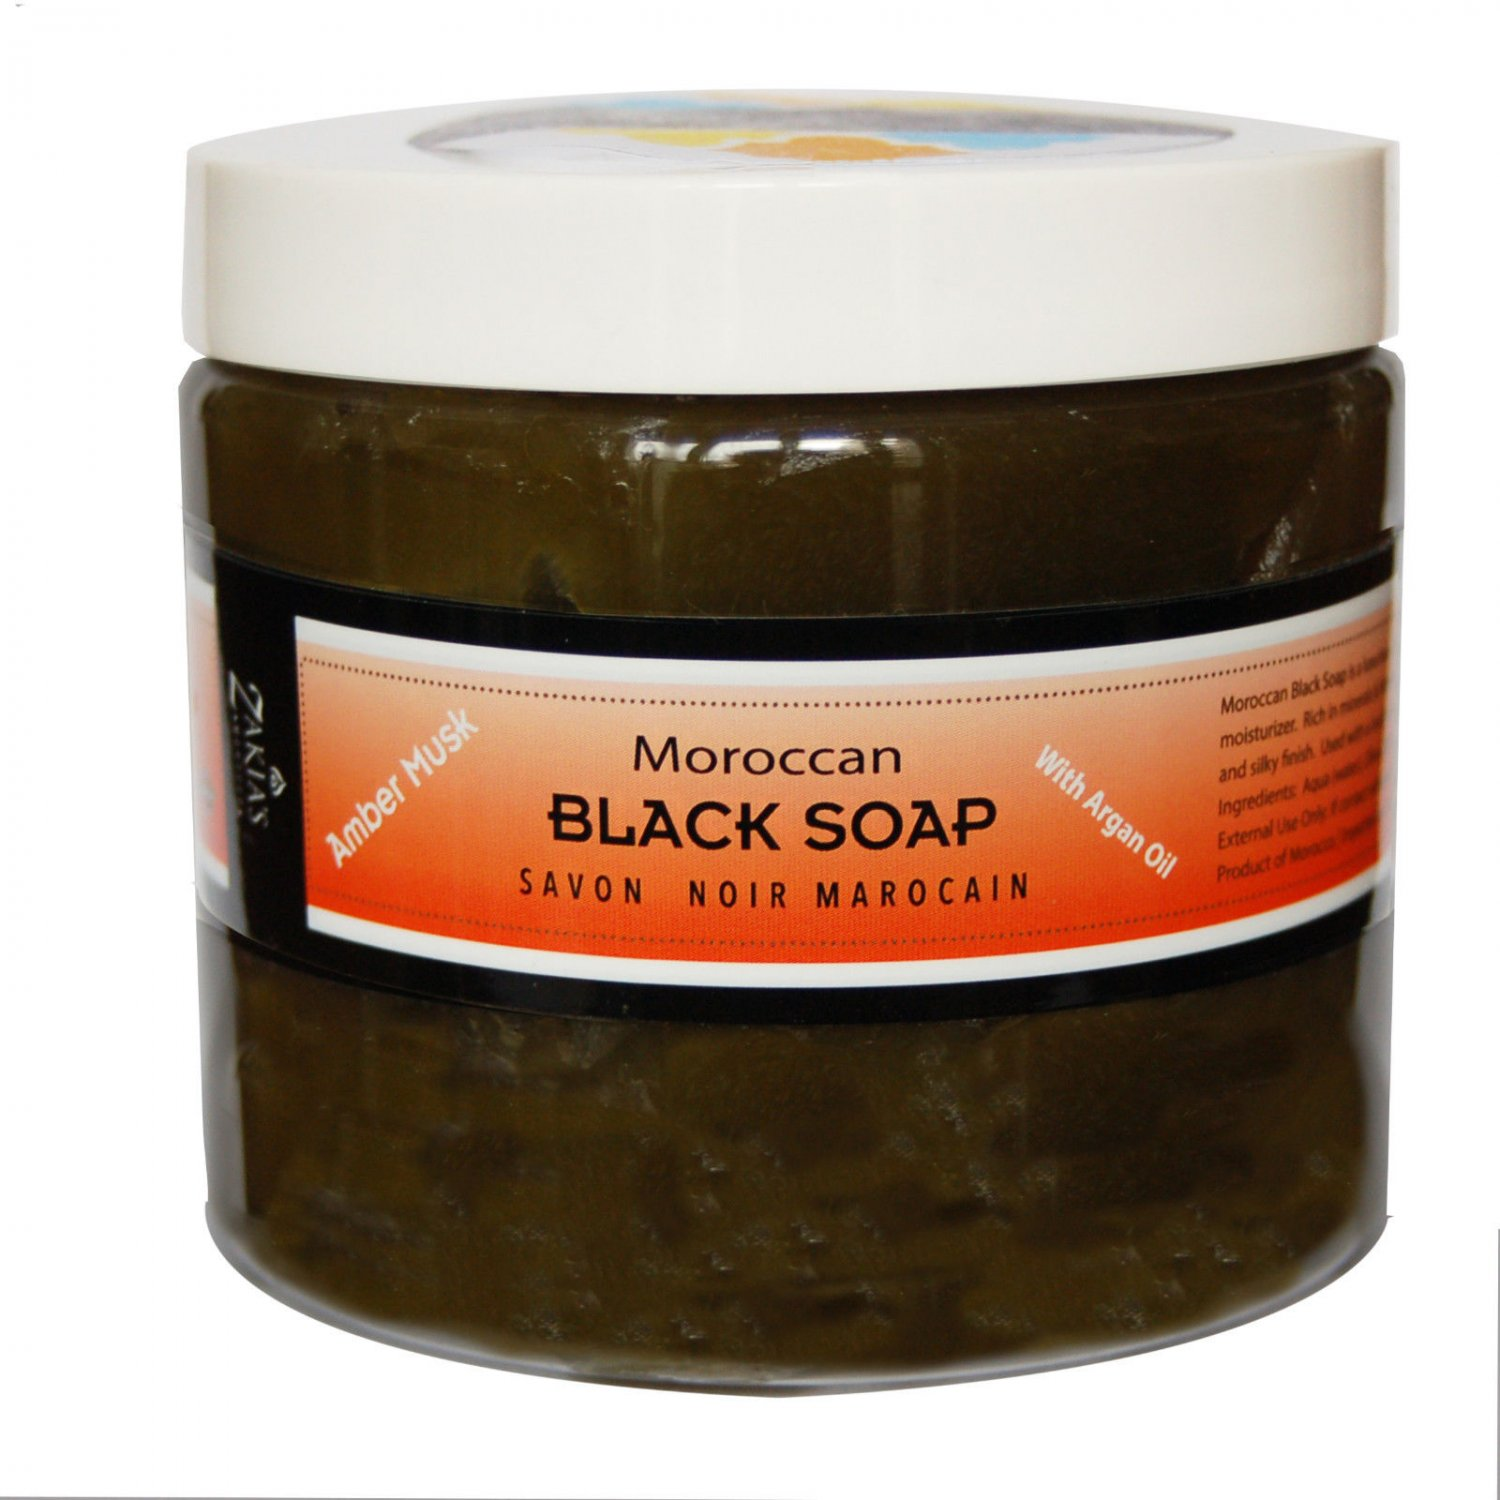 Jumbo Sized All Natural Skin Care Moroccan Black Soap-Amber Musk-Mask-Argan Oil